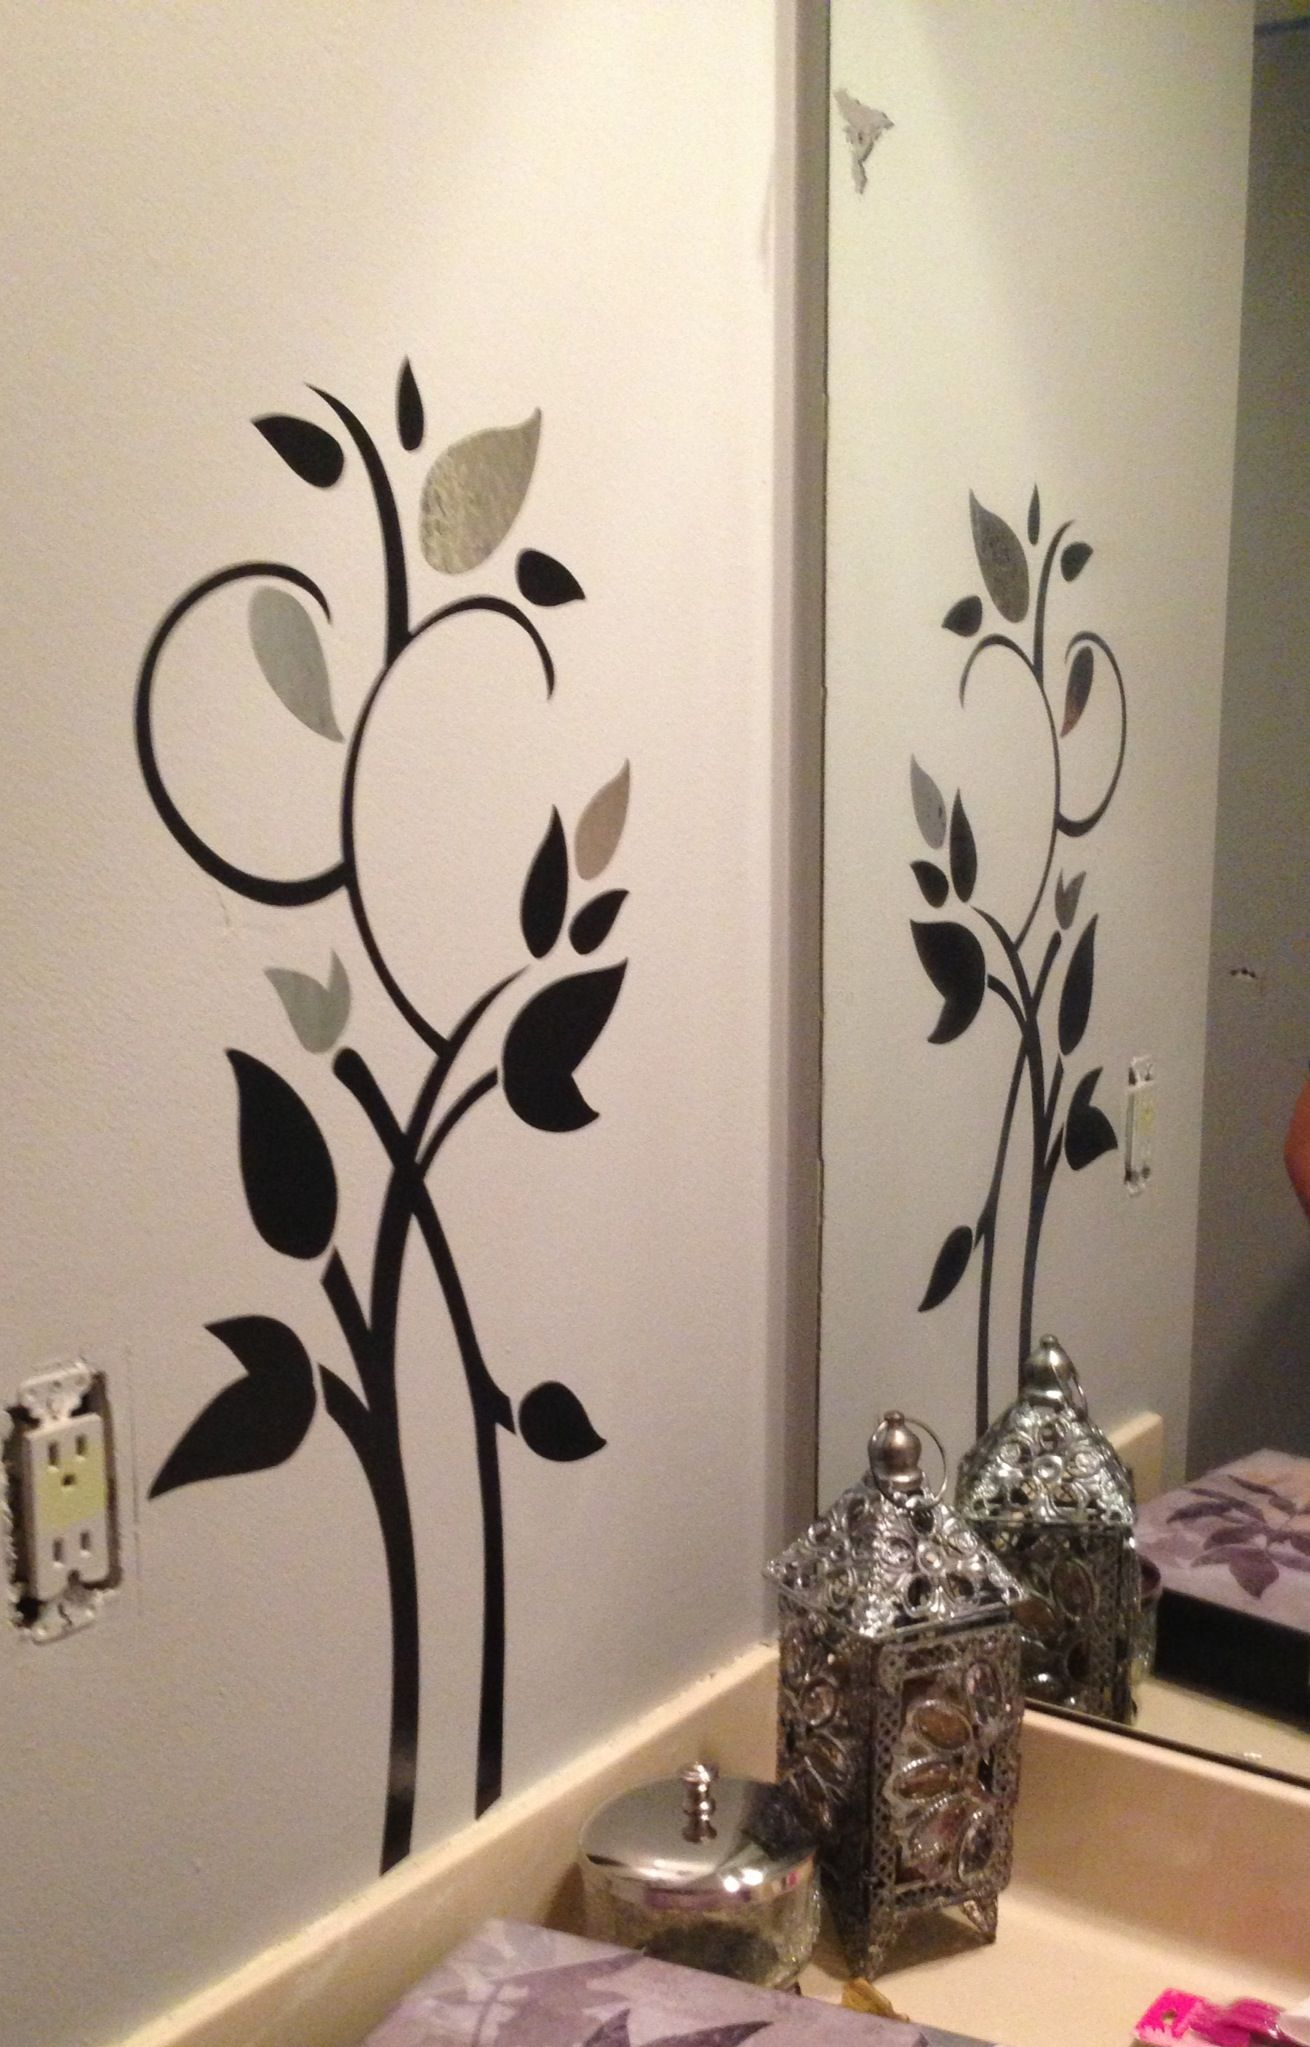 Wall Decals From Target, Easy To Do And Inexpensive